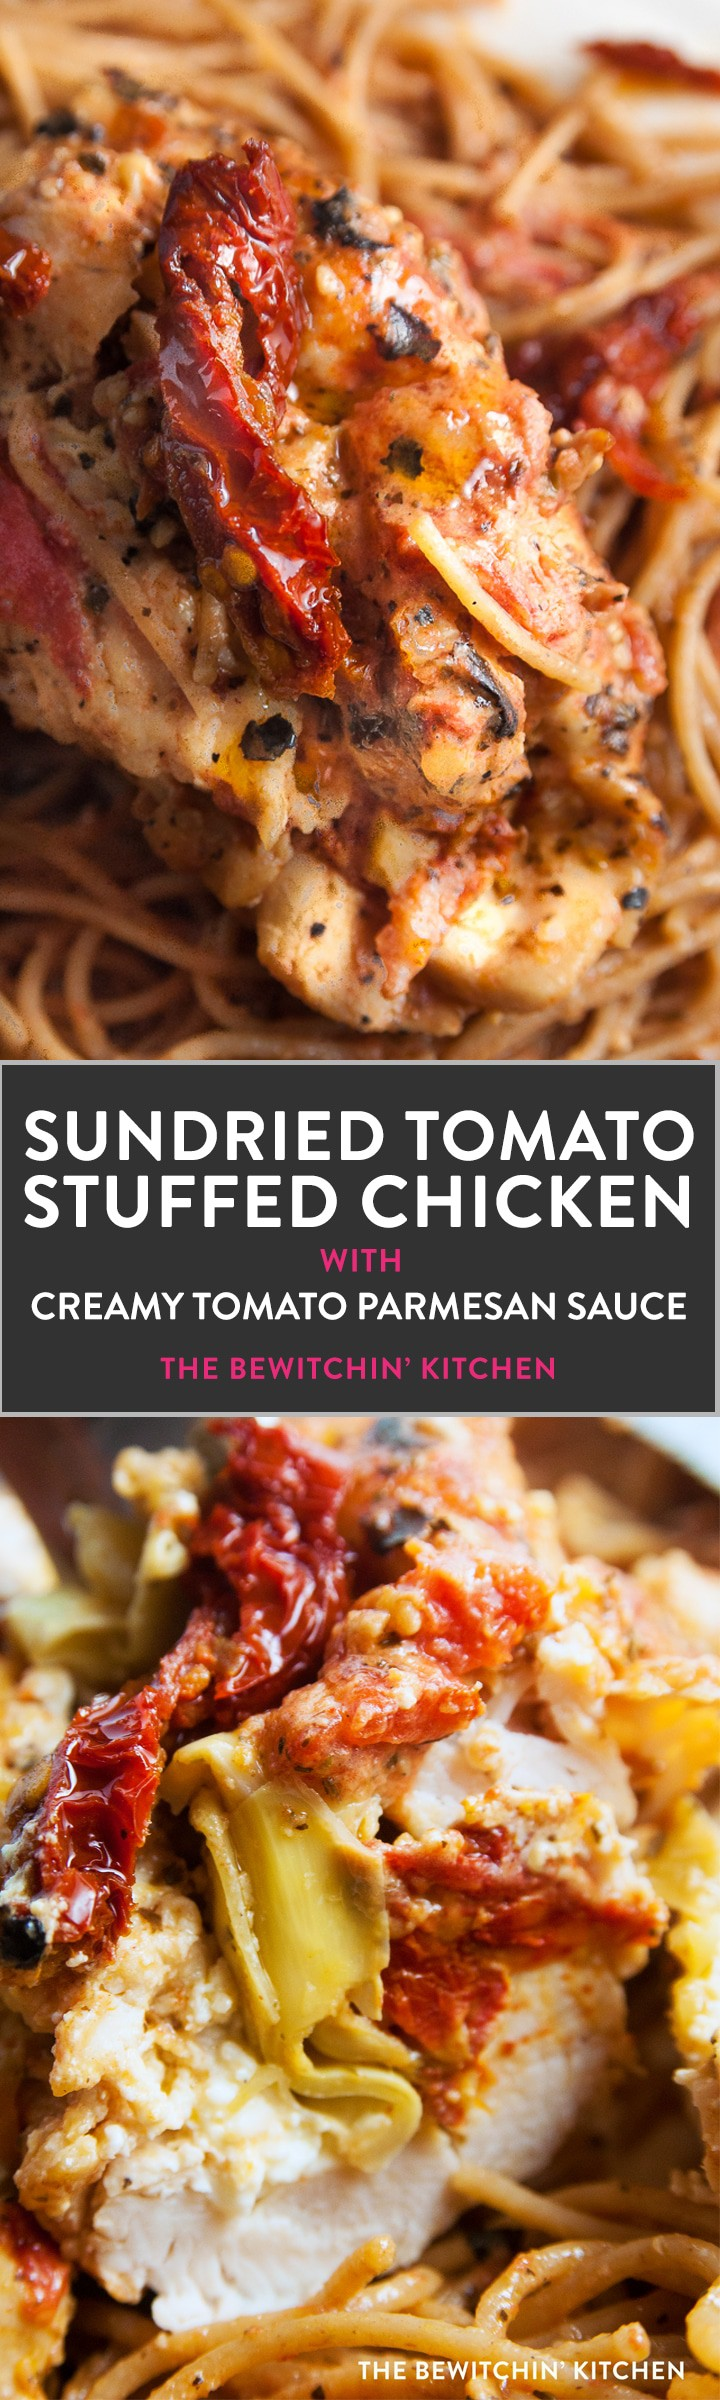 Sundried tomato stuffed chicken breasts with a creamy tomato parmesan sauce. This chicken breast recipe is stuffed with sundried tomatoes, cream cheese, and artichokes. Delicious served over pasta or with a healthy side salad for dinner.